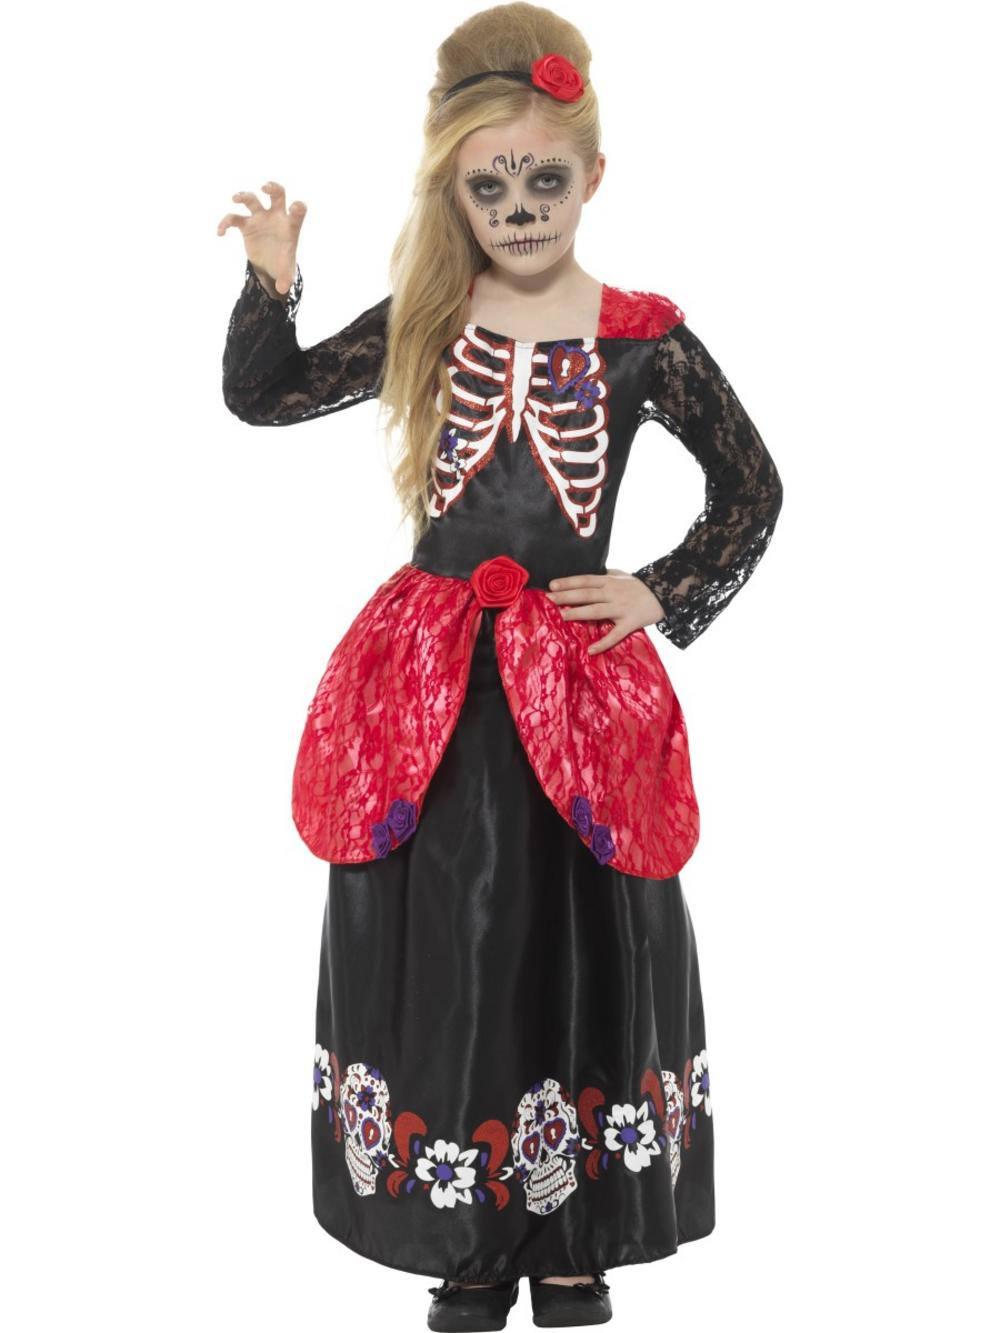 Deluxe Day of the Dead Girl Costume